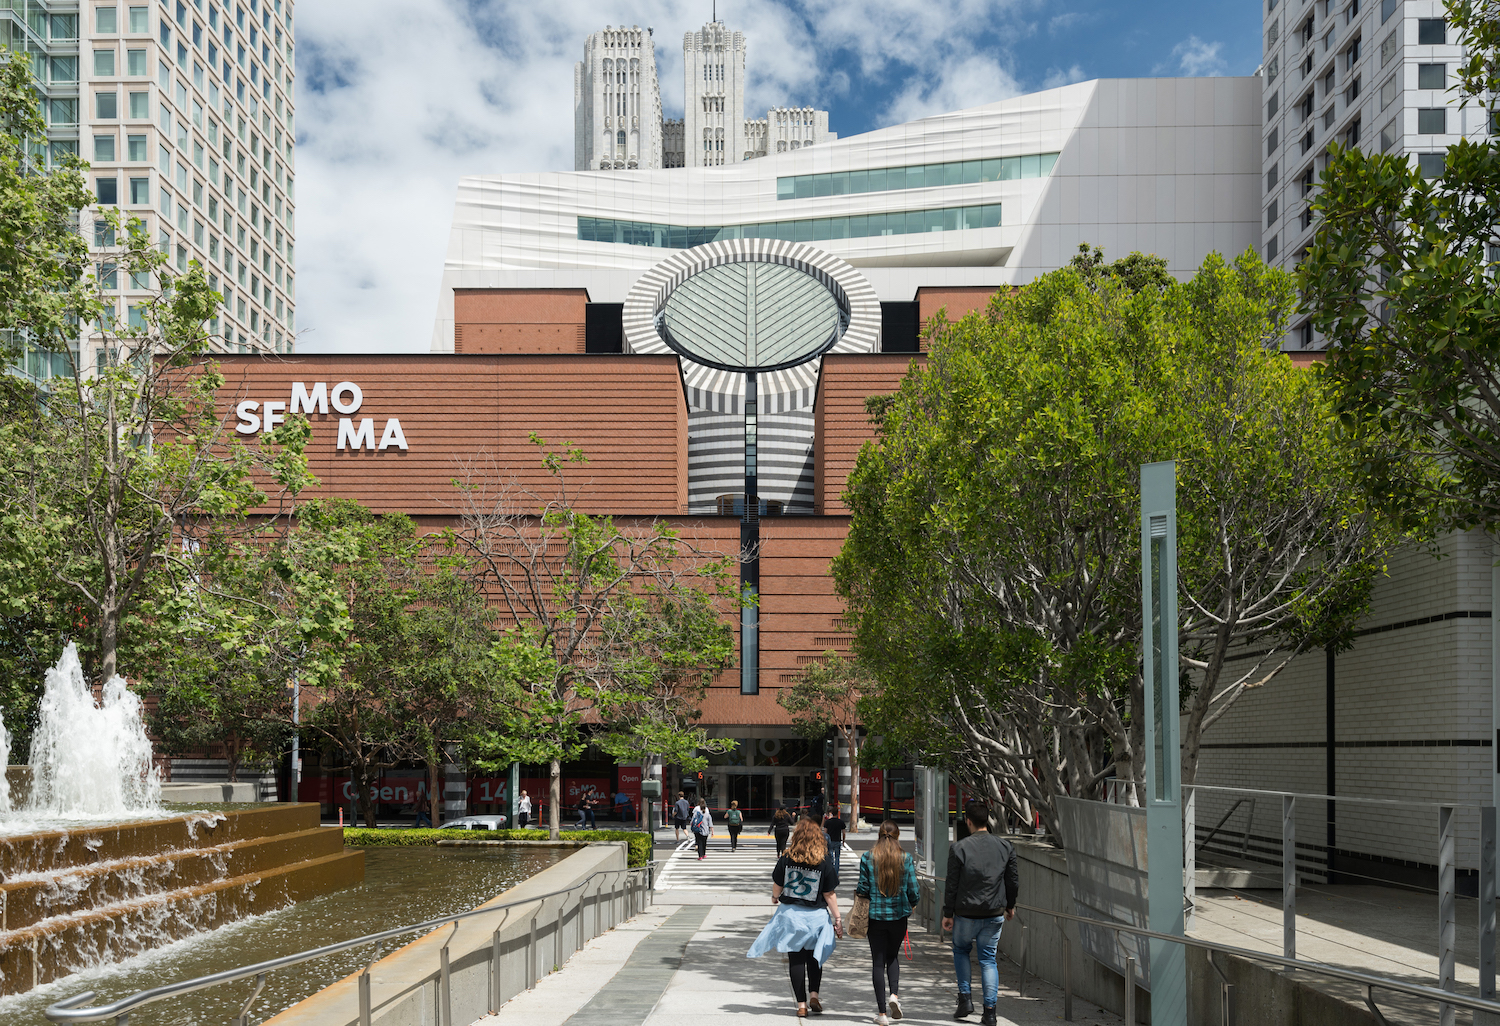 photo SFMOMA showing 1995 building and additon